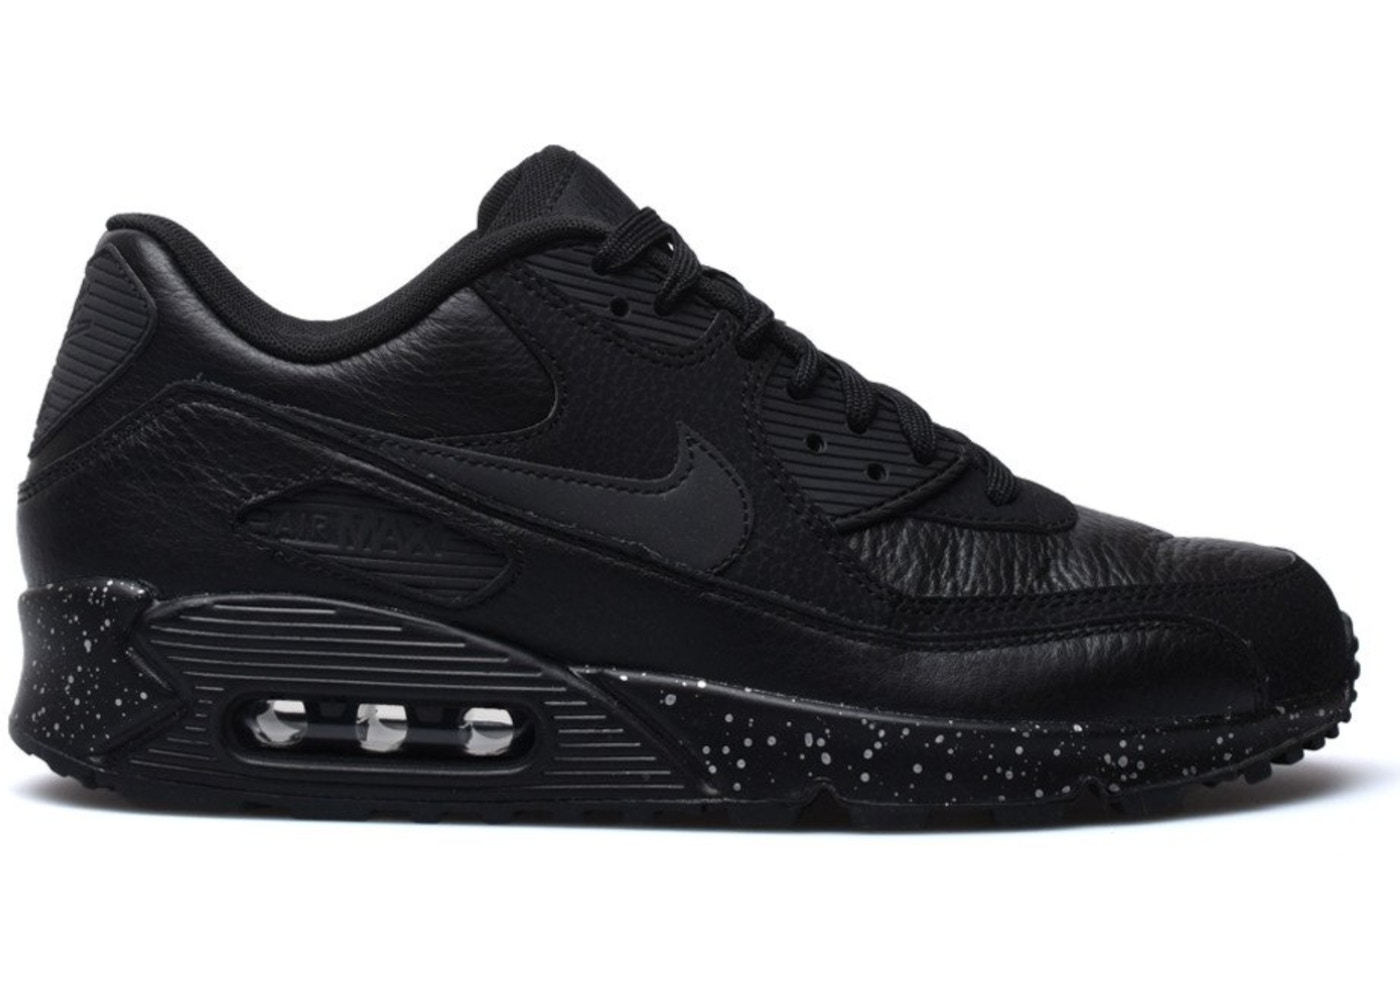 new style 87d31 2d3ef nike air max 90 3m